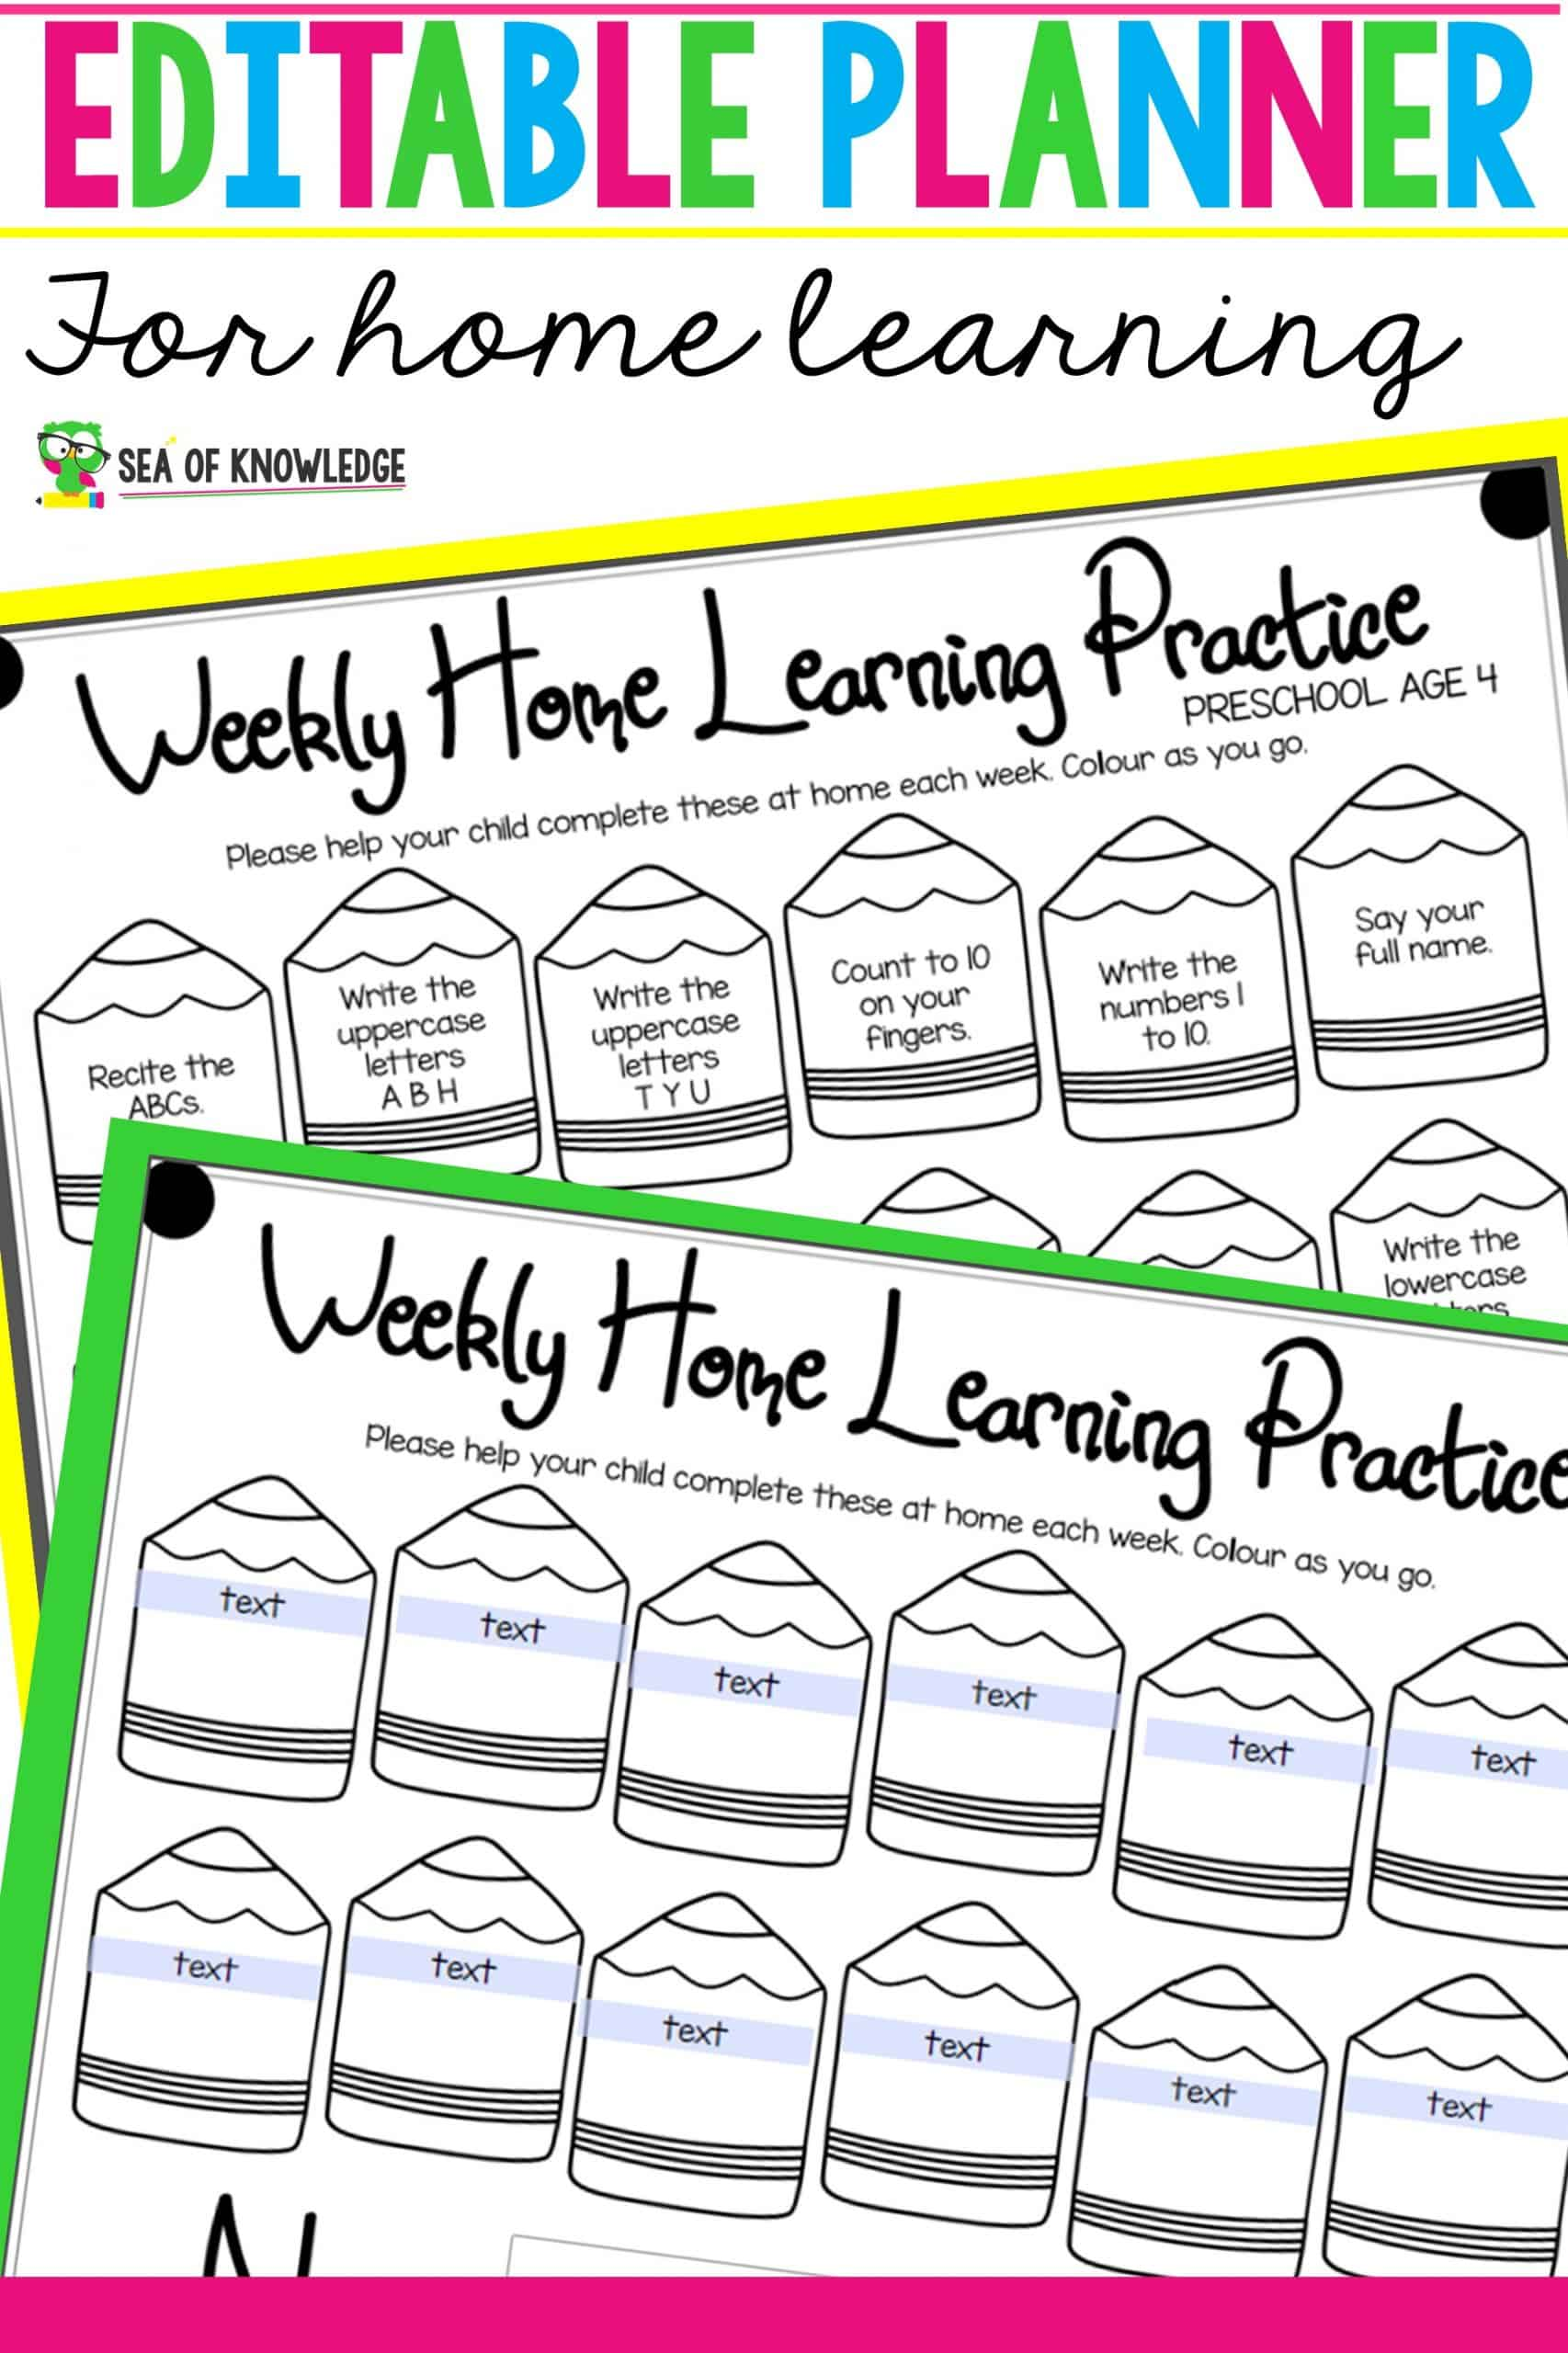 Need a set weekly planner to use for home learning? This is the one you're looking for! I created this to use with my own kids. Need one to be versatile and editable, so you can change up the goals as you go each week? This is perfect for that! Pick up your Editable Weekly Planner for Home Learning below!